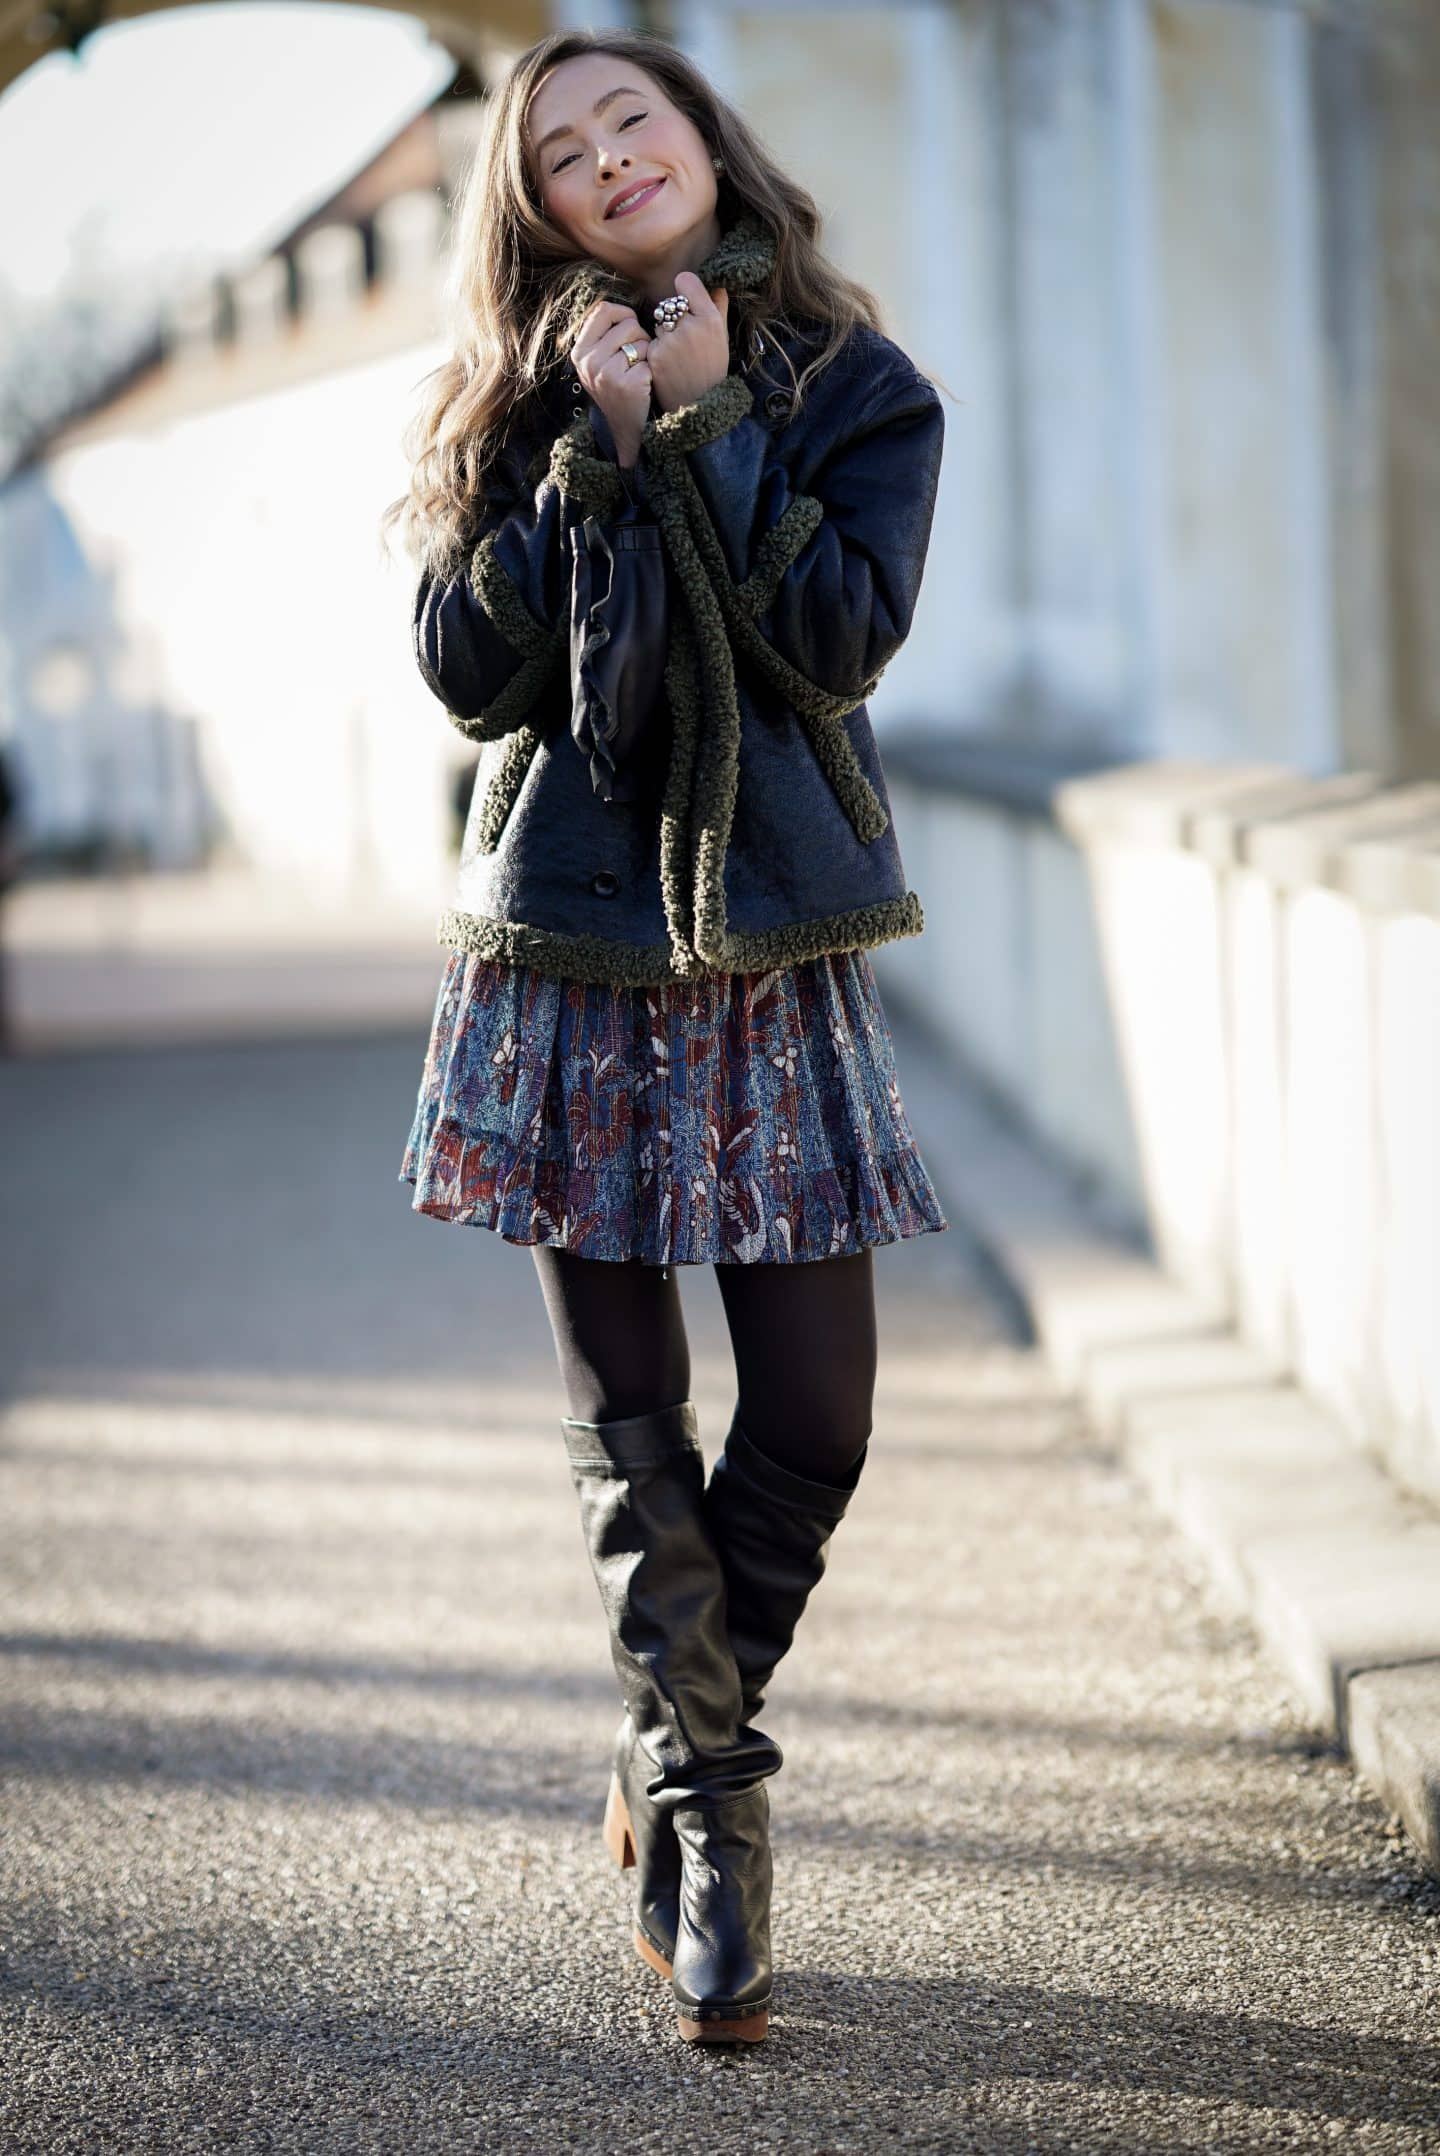 Boho Kleid im Winter stylen Nicki Nowicki ü 40 Bloggerin